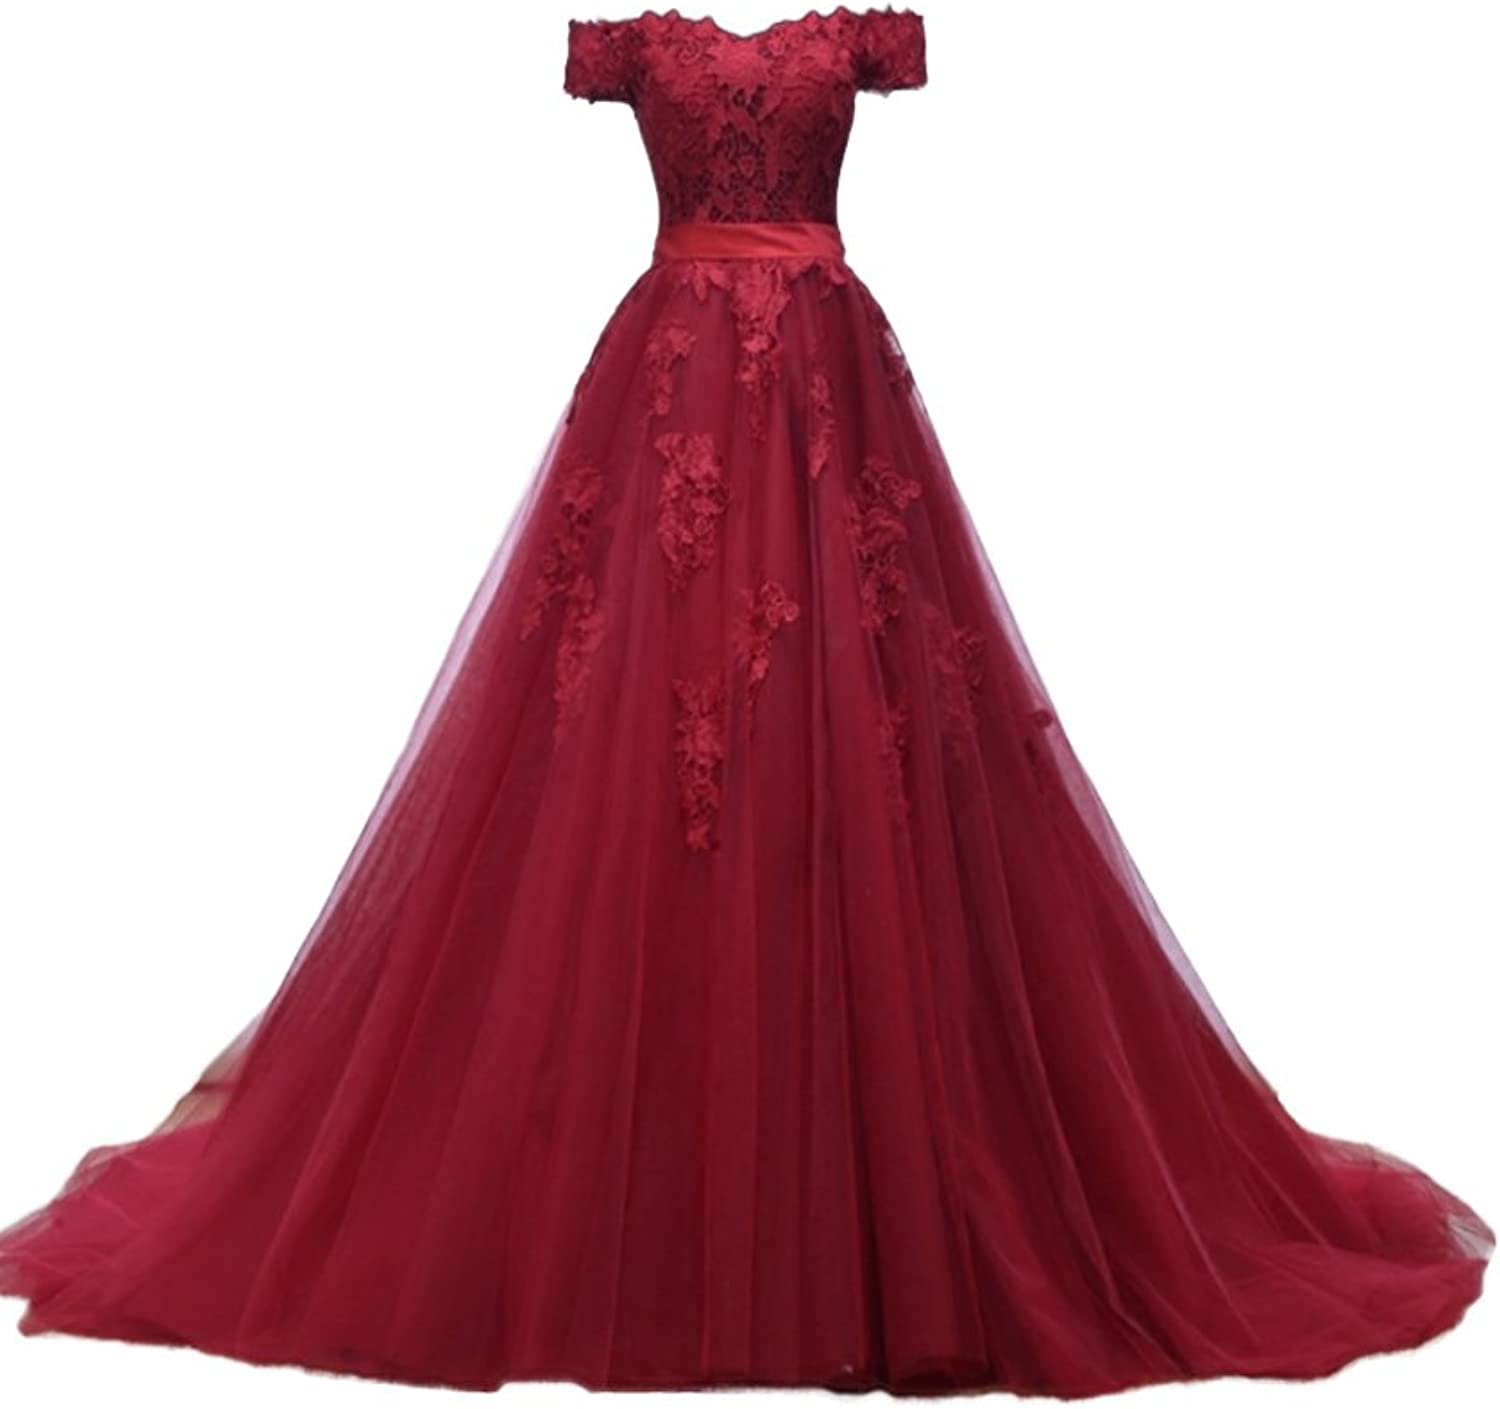 Wdress Elegant Ball Gown Prom Dresses Off Shoulder Lace Appliques Evening Gowns